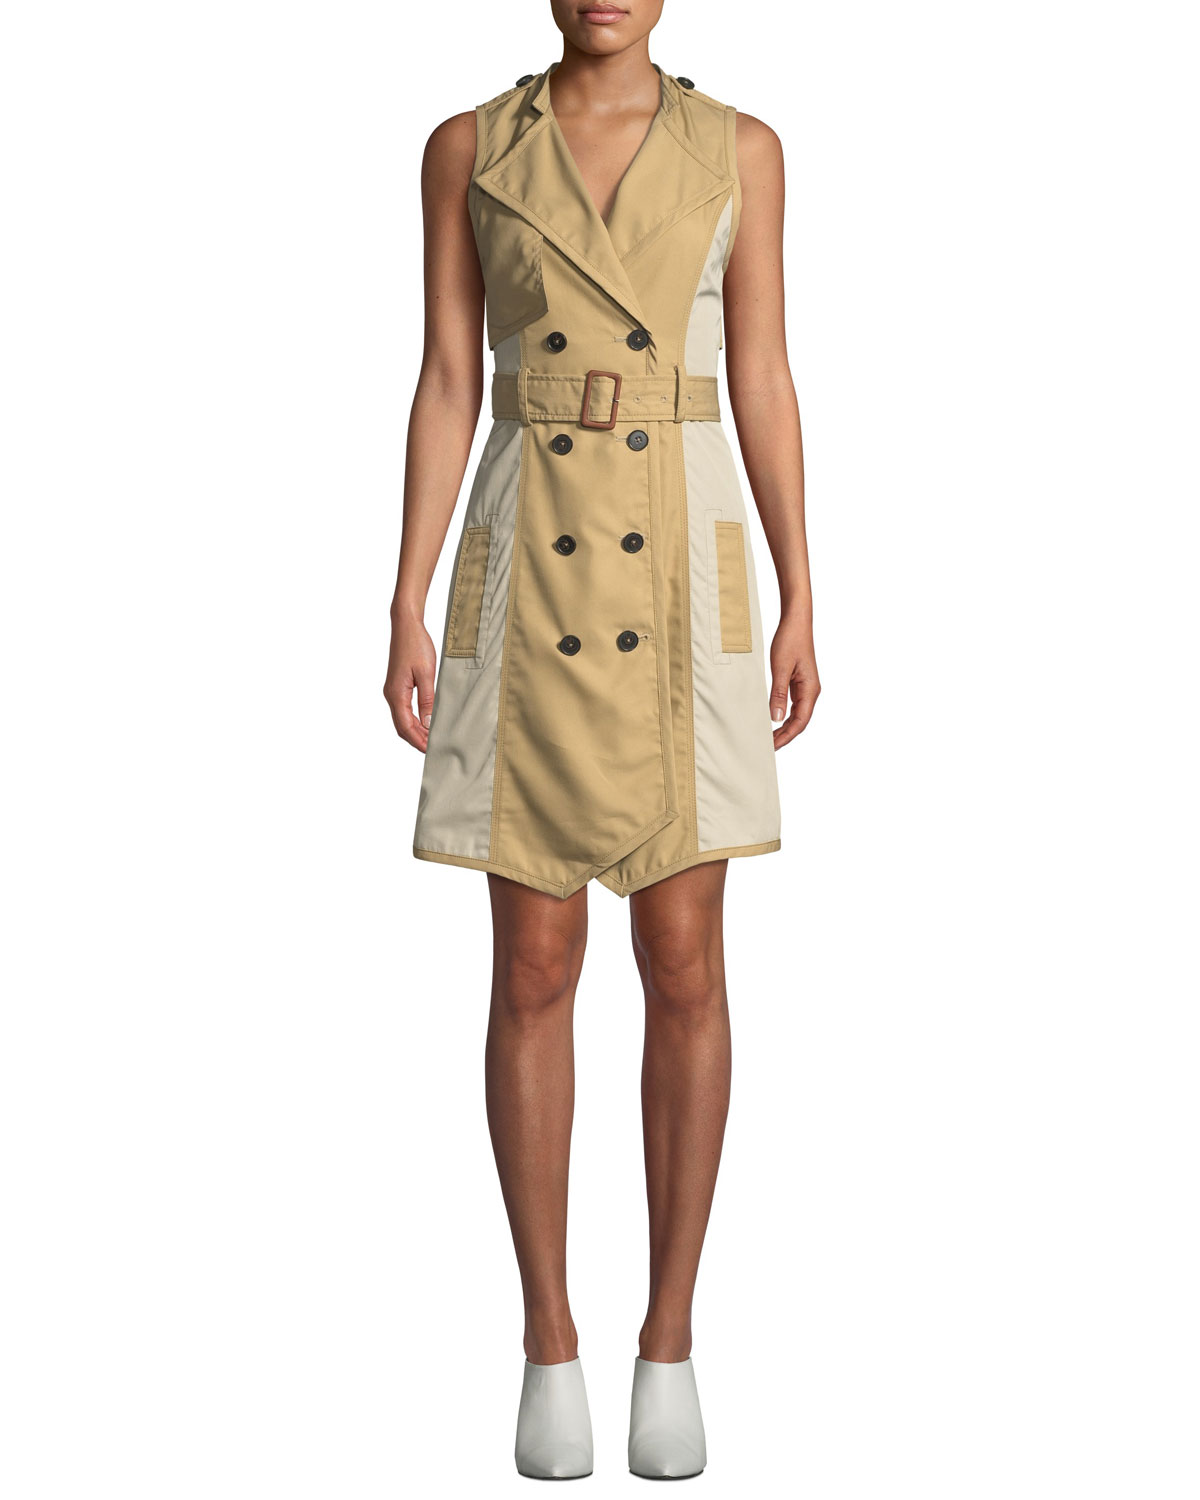 Sleeveless Belted Trench Dress in Khaki